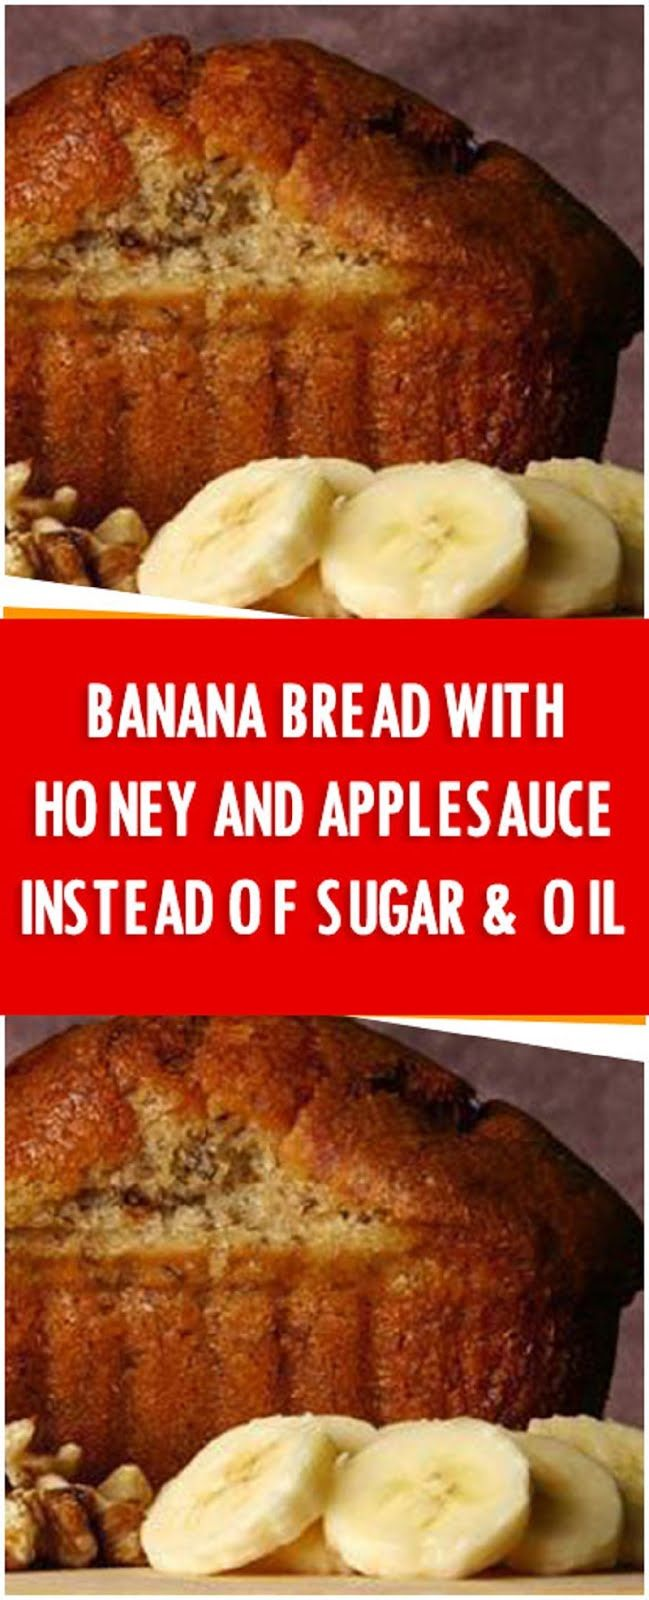 Banana Bread with honey and applesauce instead of sugar &oil. Delicious & Healthy